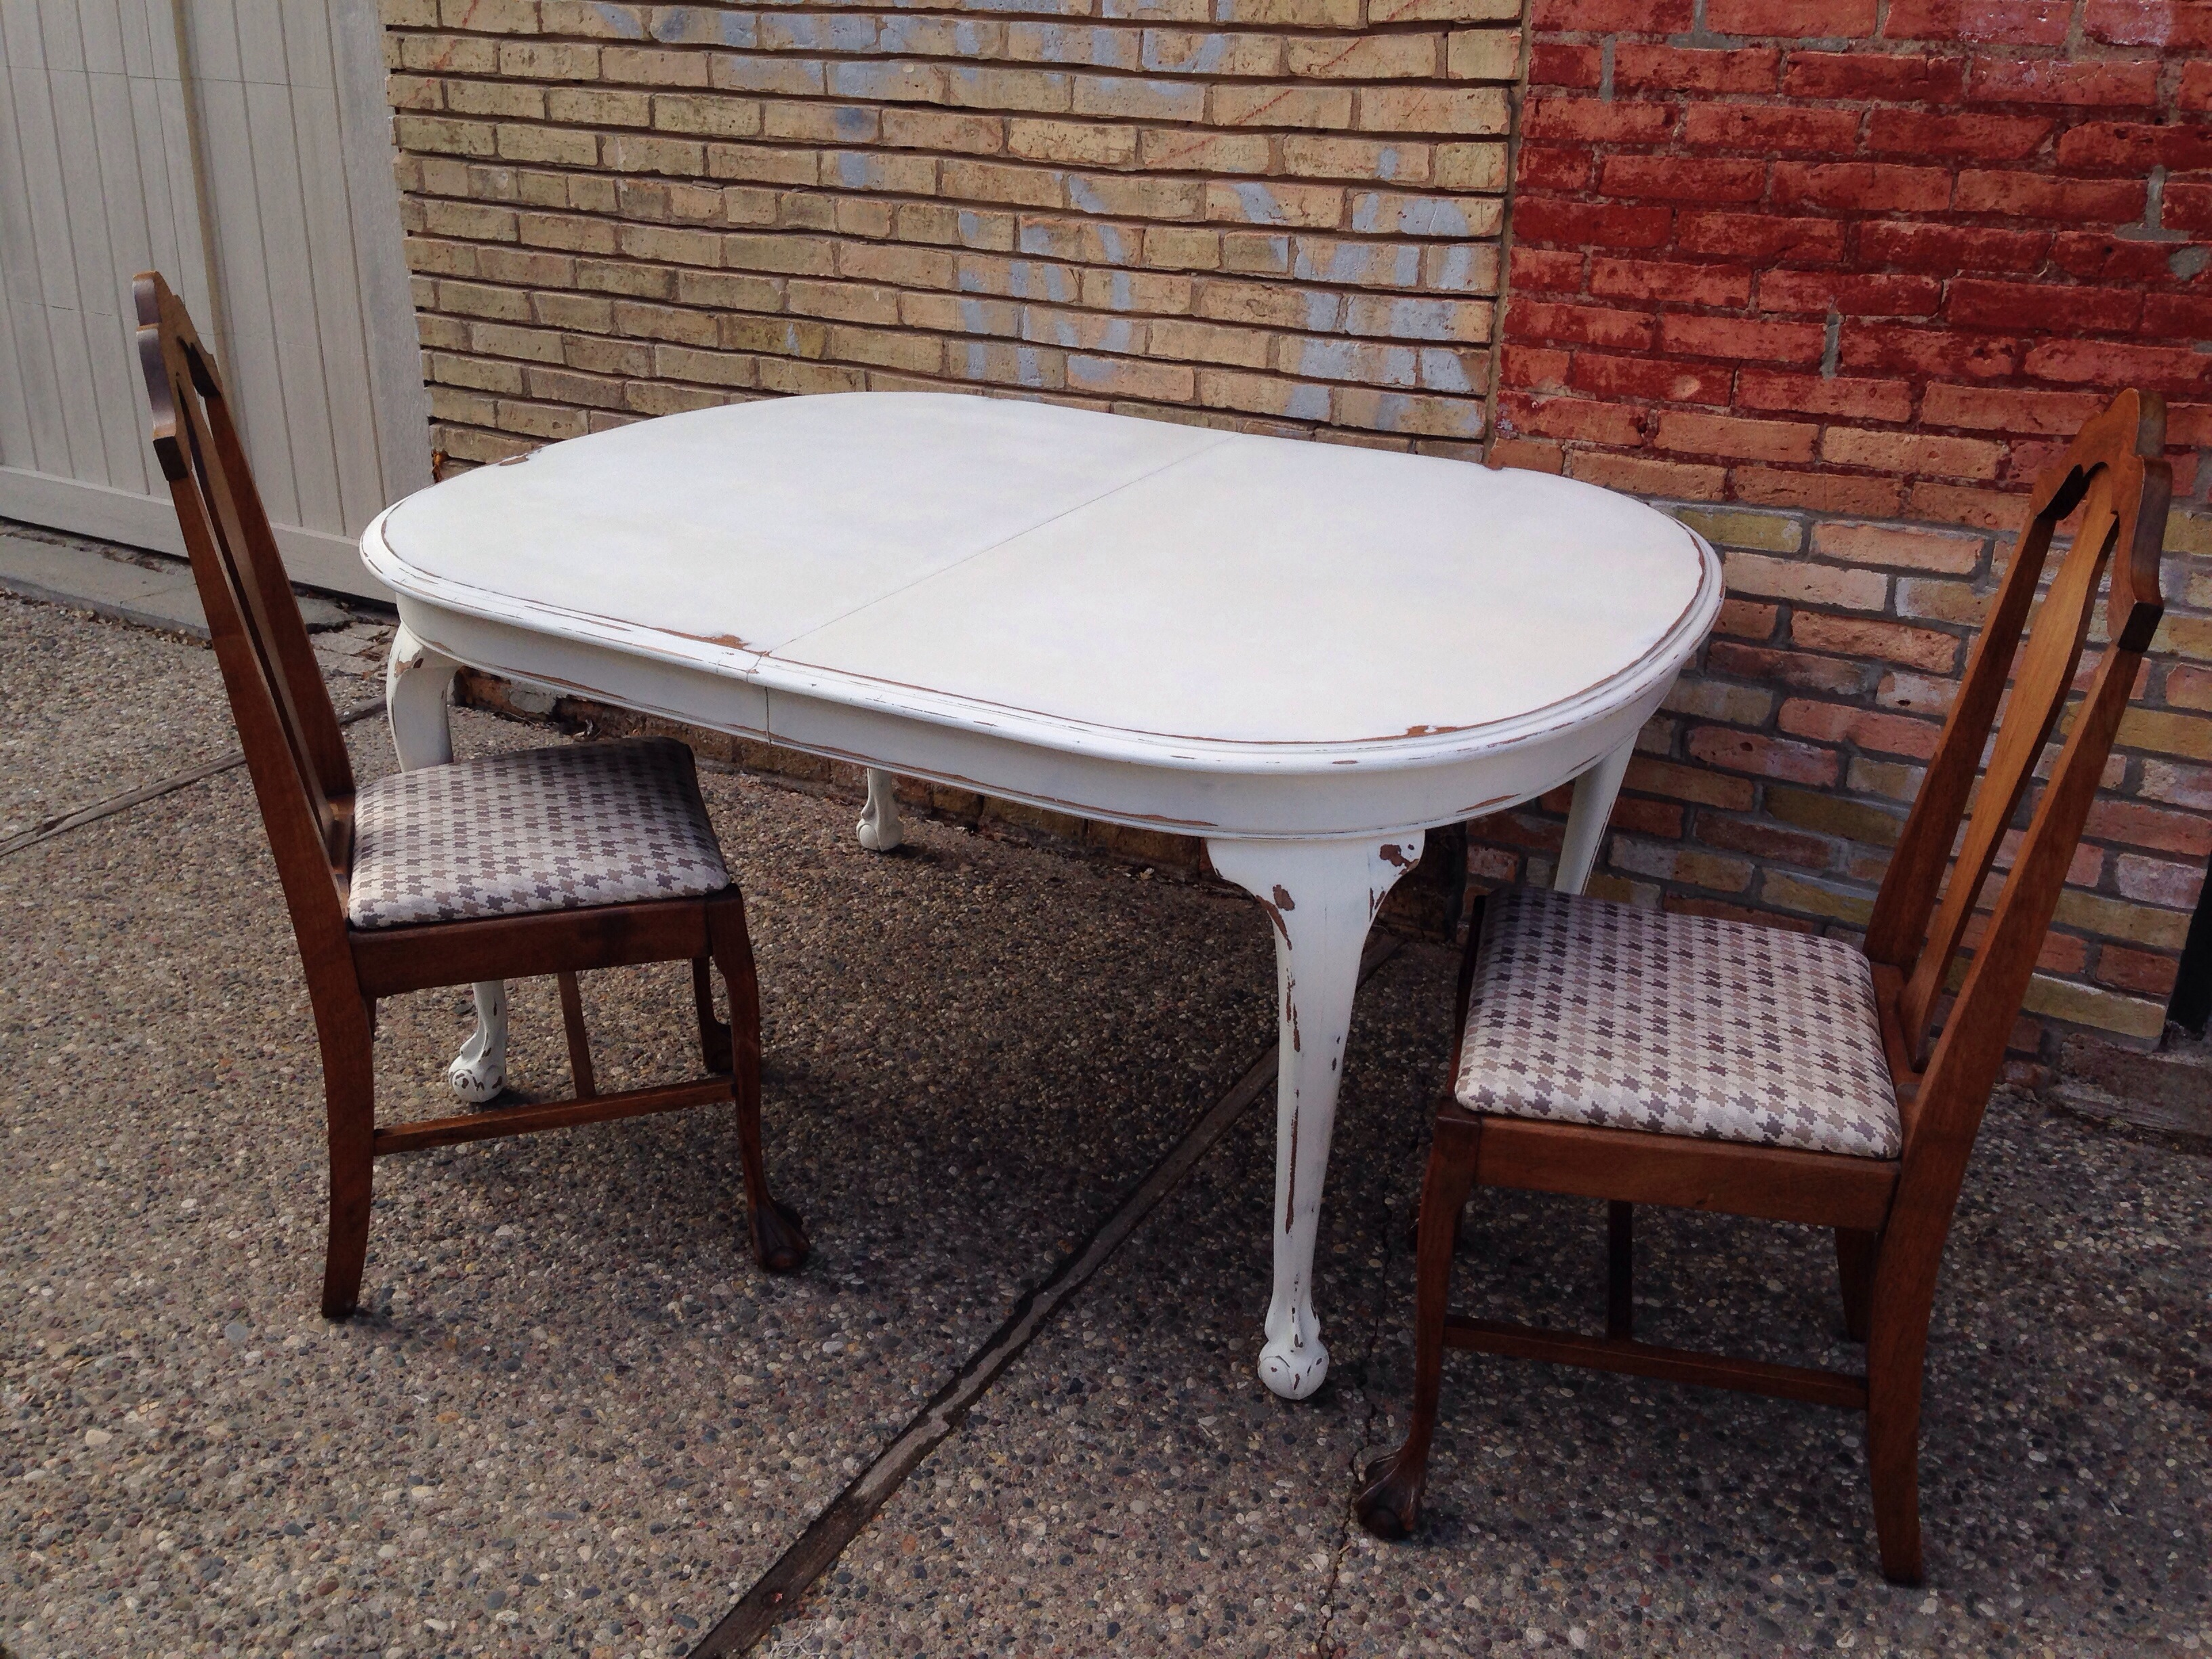 Antique Claw Foot Table painted with Miss Mustard Seed Milk Paint from Carver Junk Company | Recycle. Repurpose. Relove.